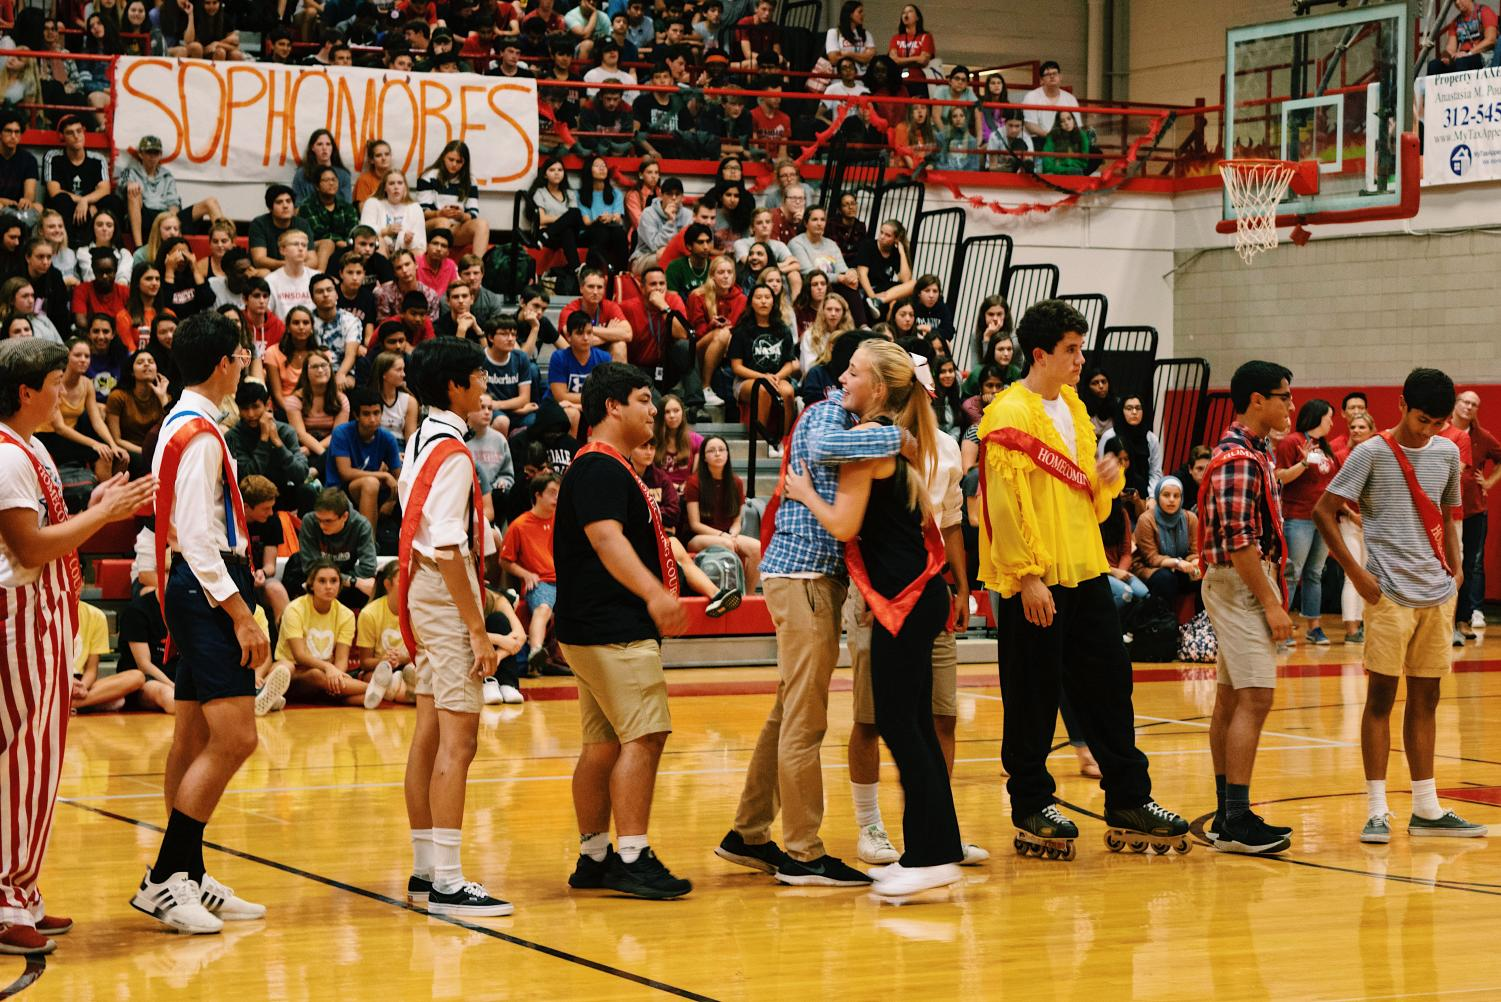 On Friday, Sept. 20, the homecoming court nominations assembly took place at the school gymnasium. The nominated seniors hugged each other down a line to congratulate each other.